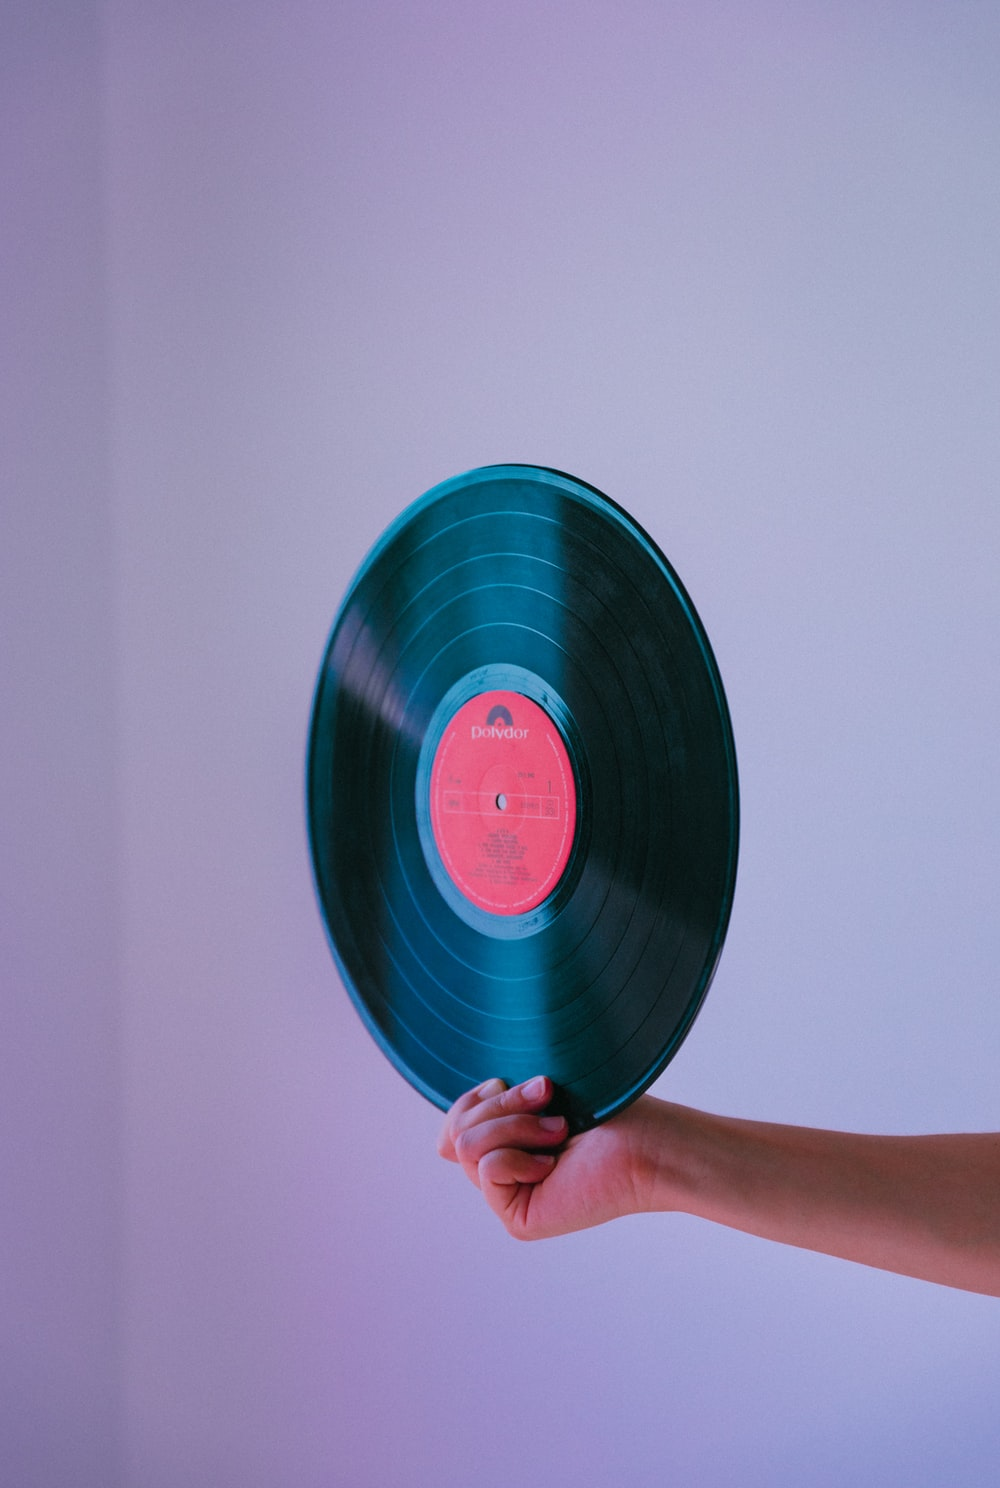 750 Vinyl Pictures Hq Download Free Images On Unsplash